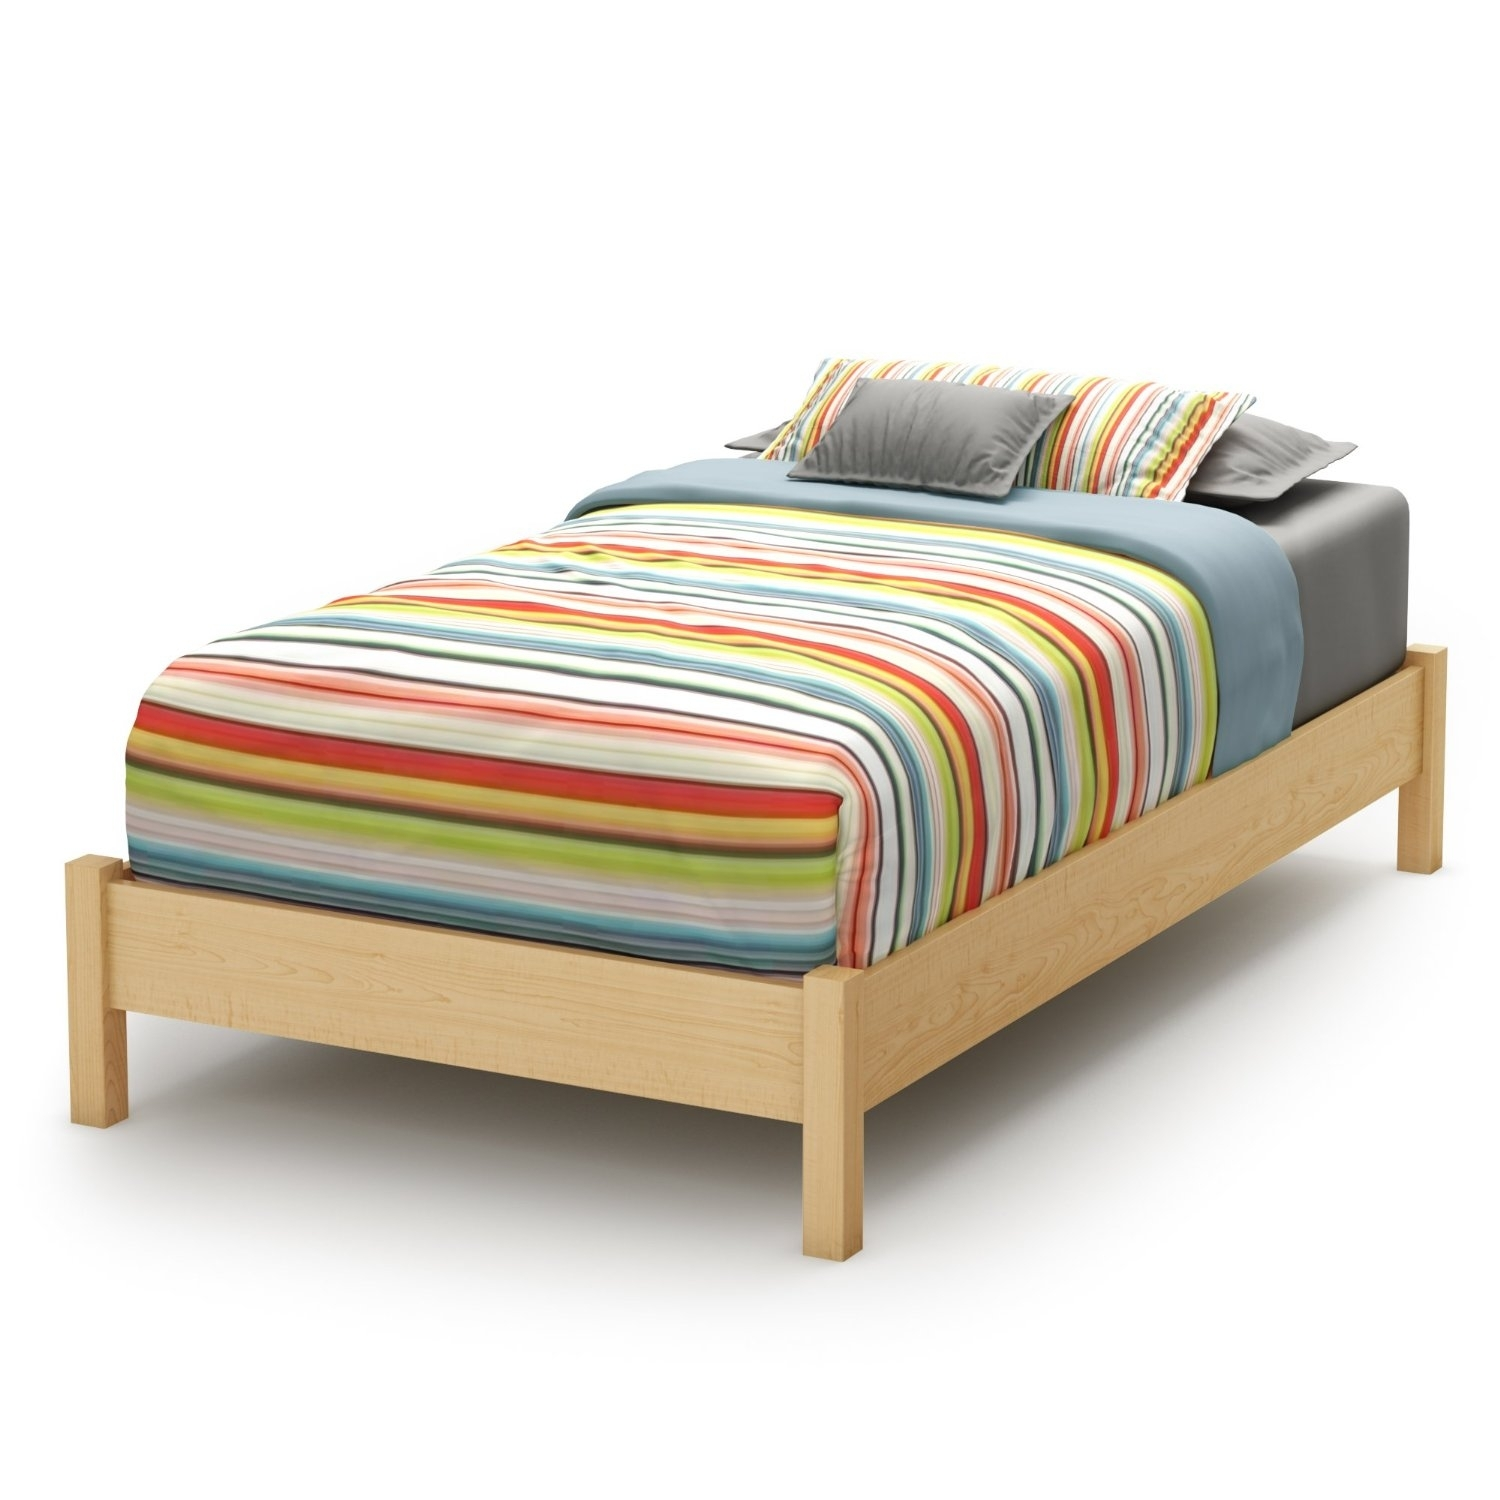 Wood Twin Bed Frame With Headboardtwin size platform bed